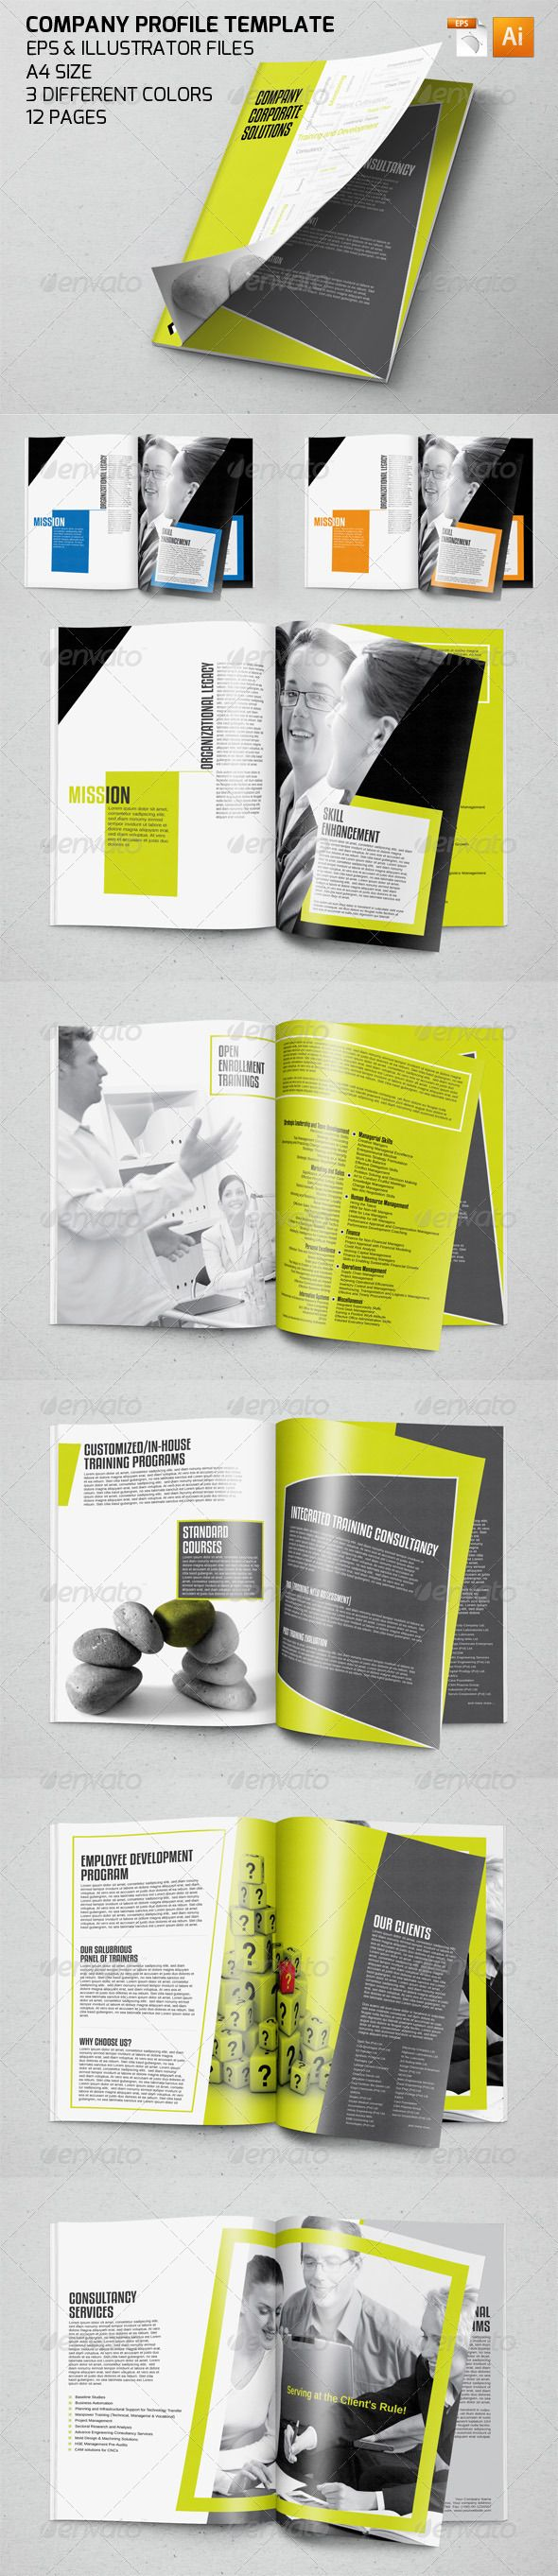 Professional Company Profile Template – Corporate Profile Template